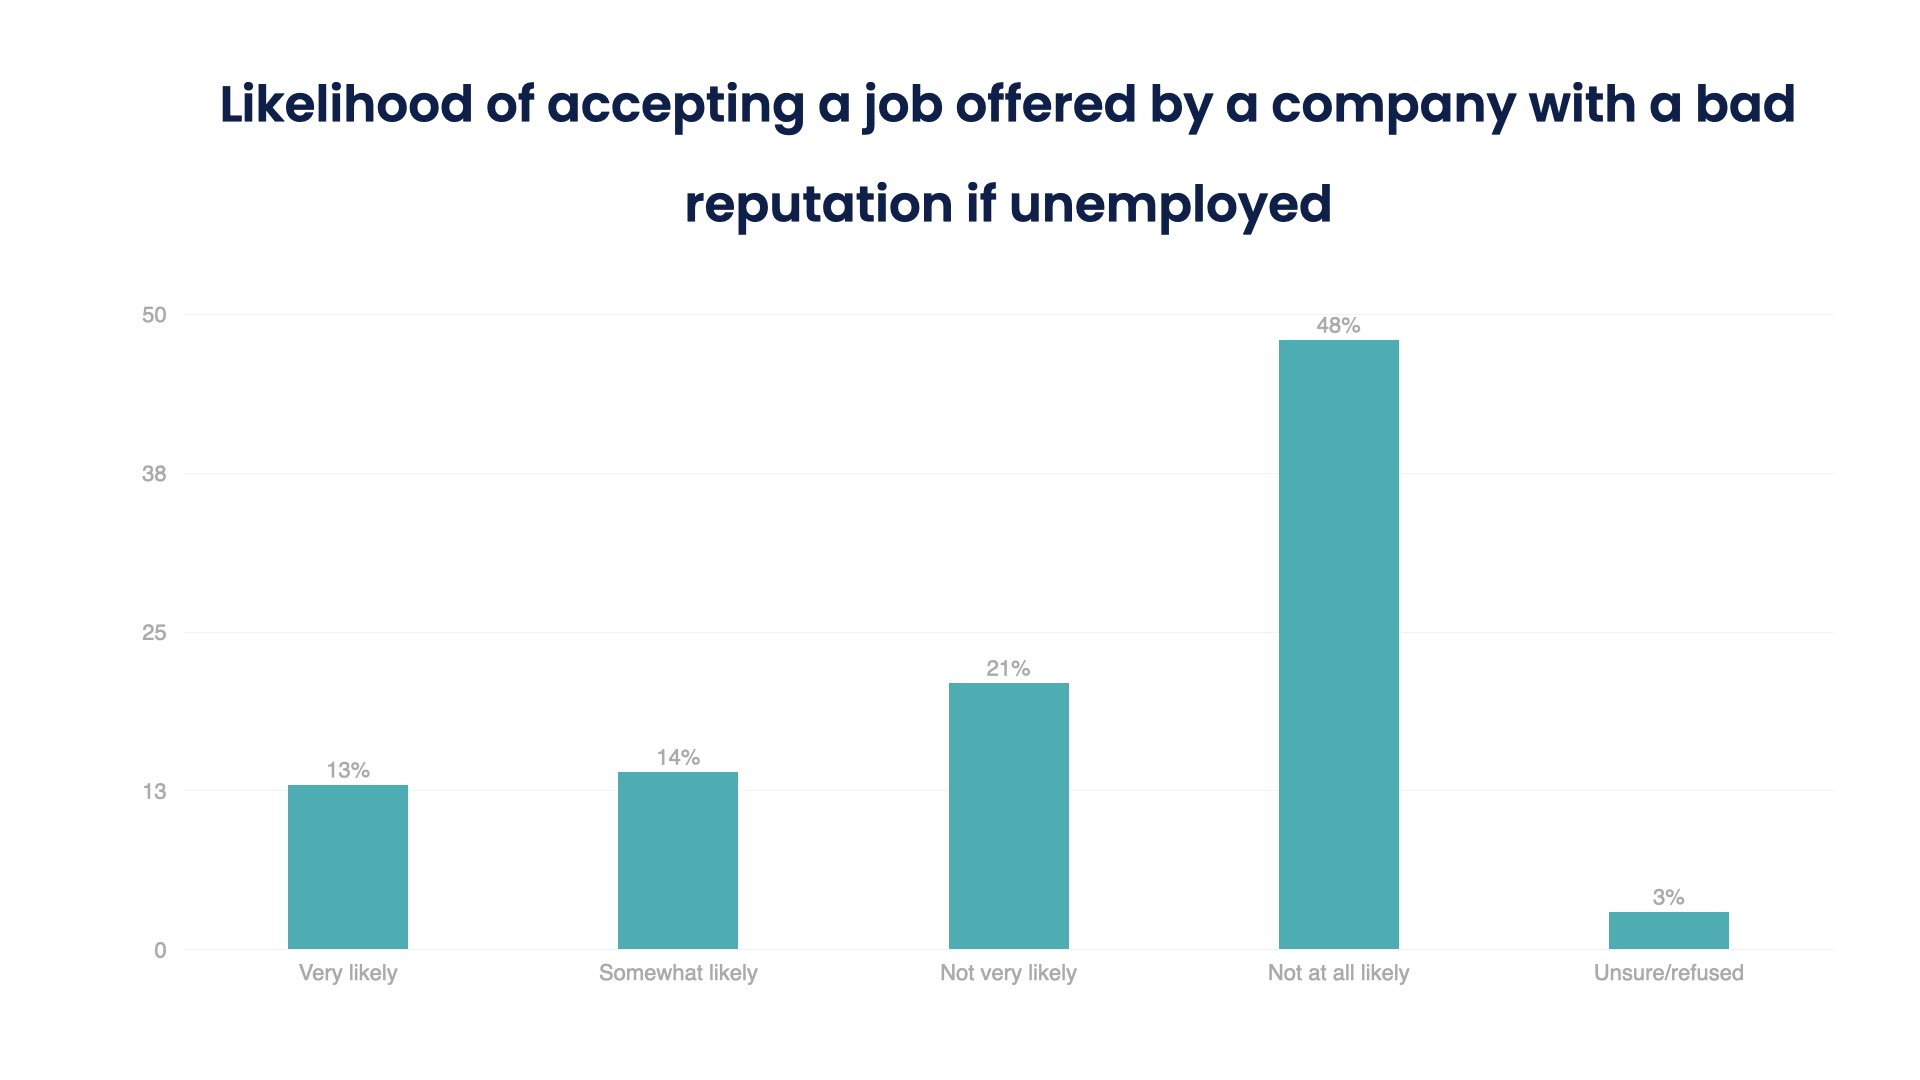 Likelihood of accepting a job offered by a company with a bad reputation.001